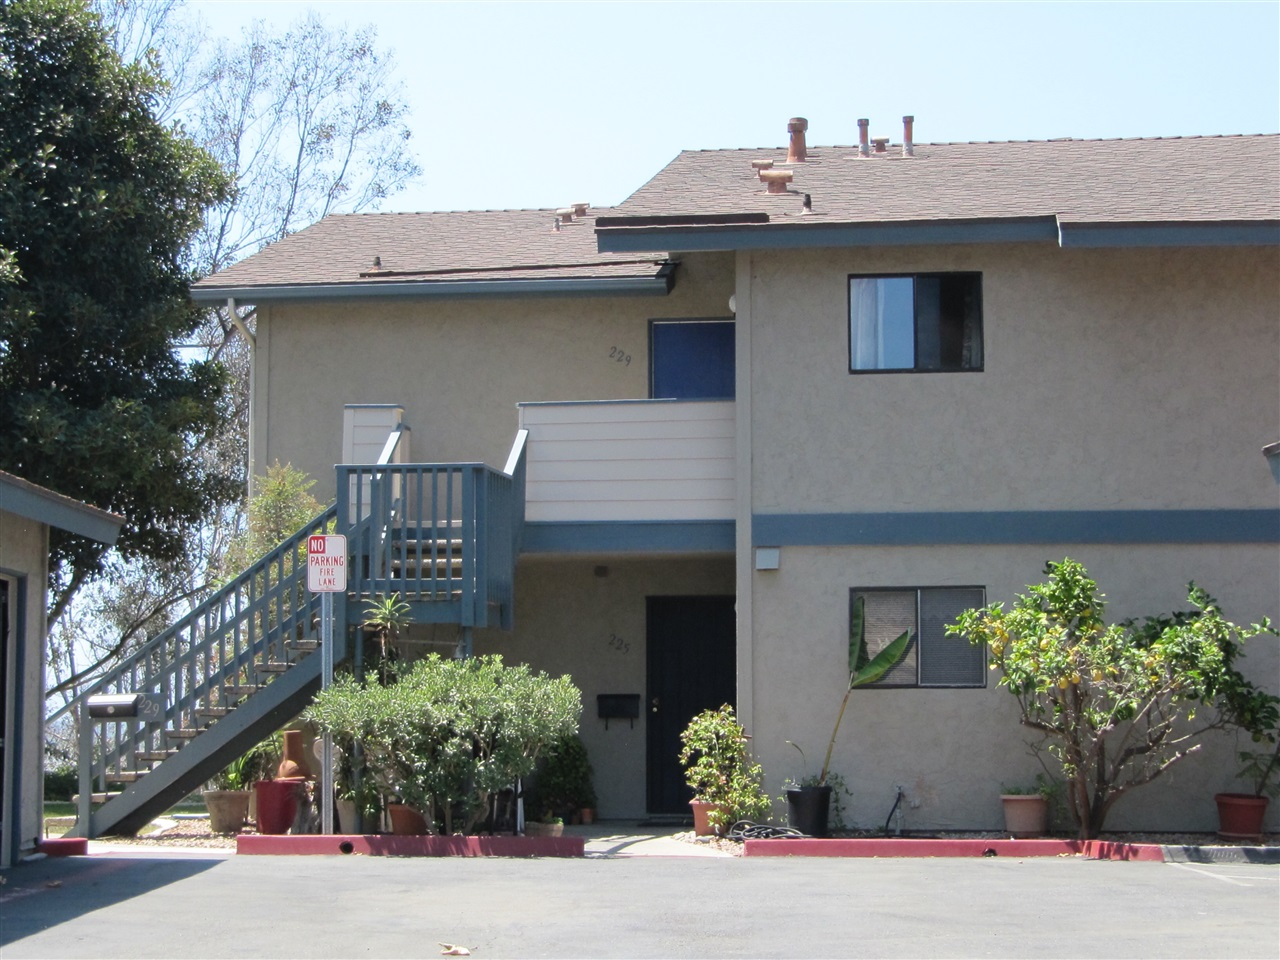 229 Stage Coach Rd, Oceanside, CA